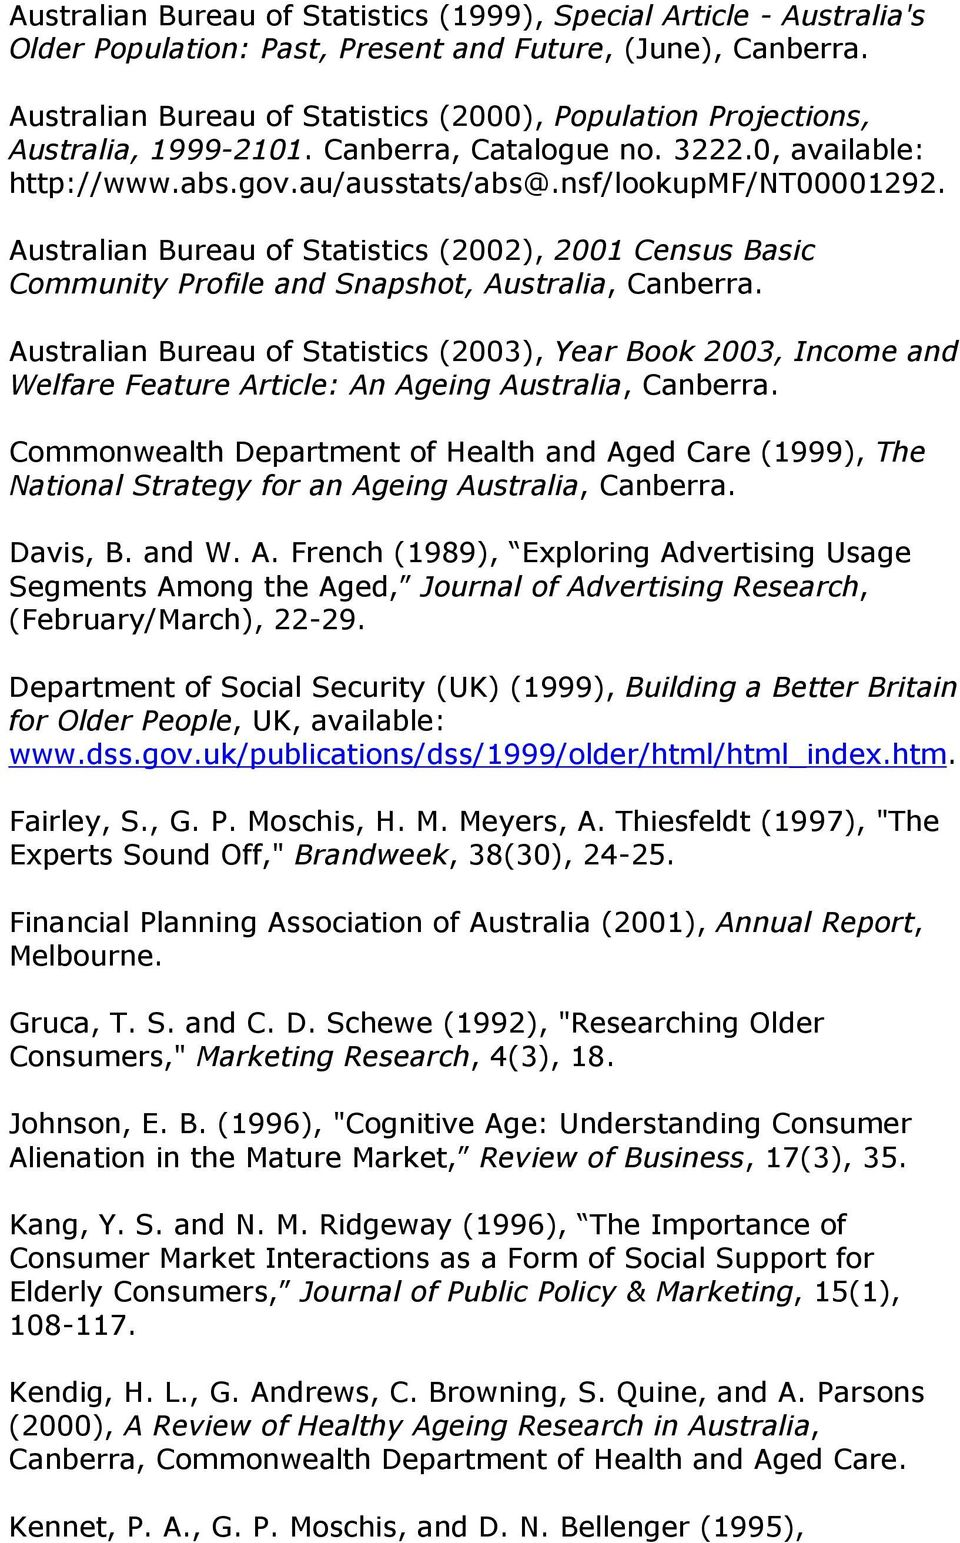 Australian Bureau of Statistics (2002), 2001 Census Basic Community Profile and Snapshot, Australia, Canberra.